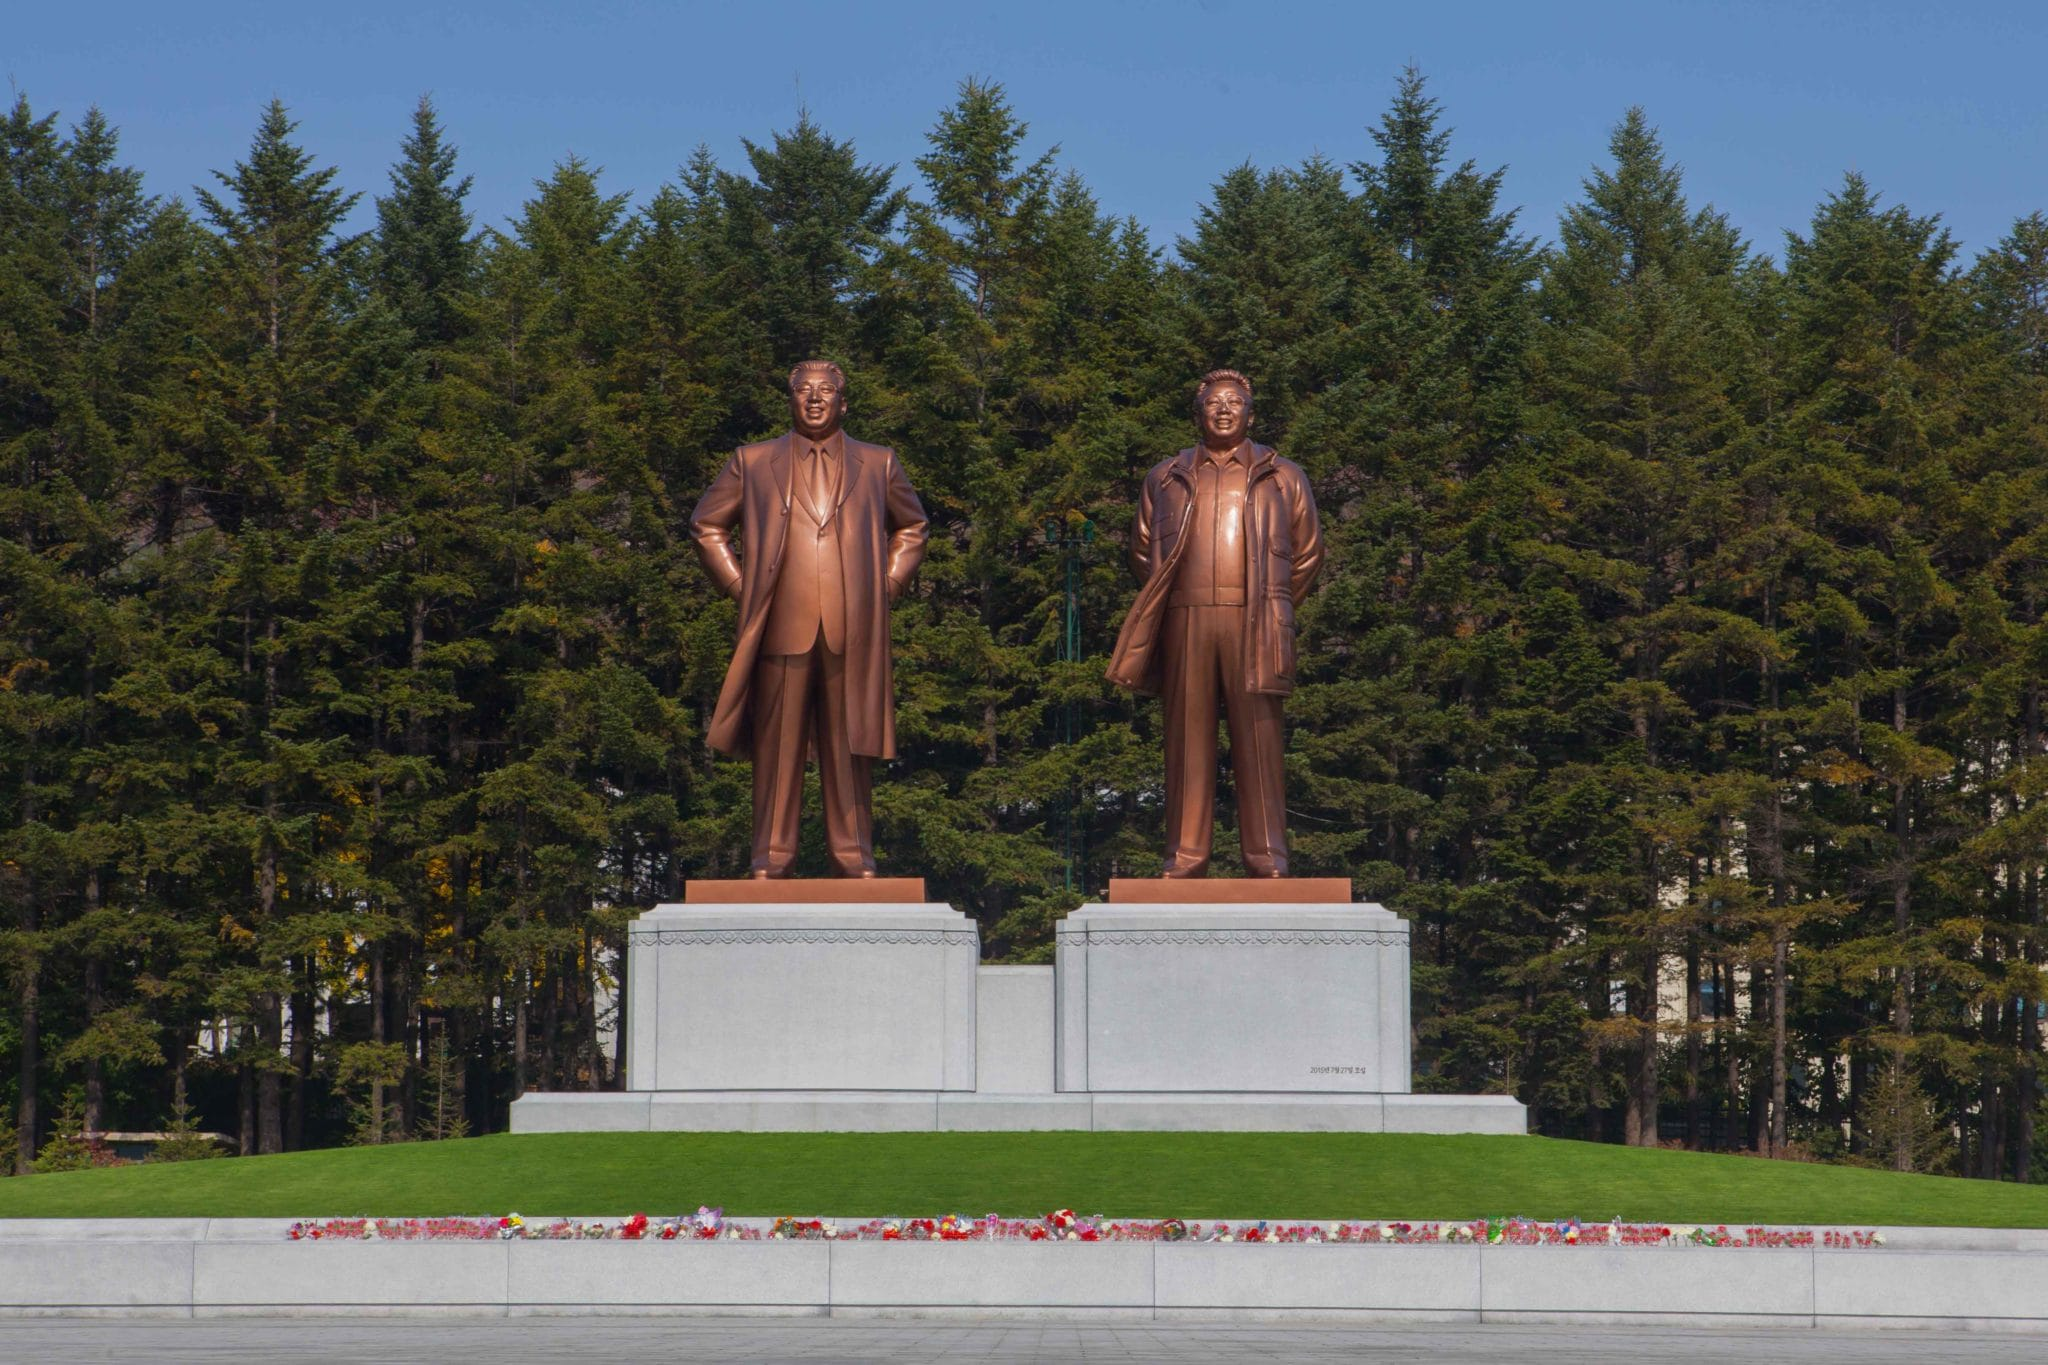 North Korea, «The Benevolent Sun», a book to come soon by Pierre Bessard, design by the Dutch artistic director SYB, Sybren Kuiper (Works 1990-2015) perhaps I'll come again, just for close definitely this one in end of the year… Serie «The great Leader» a panorama in all the country (30 cities, Pyongyang Sariwon Wonsan Hamhung Nampo Sinuiju Sunchon Haeju Kimchaek Chongjin Anju Sunchon Kaesong Kiliju Musan Chosan Kanggye Hungnam Yonan Handae-ri Sinpo Unsan… Editions Bessard